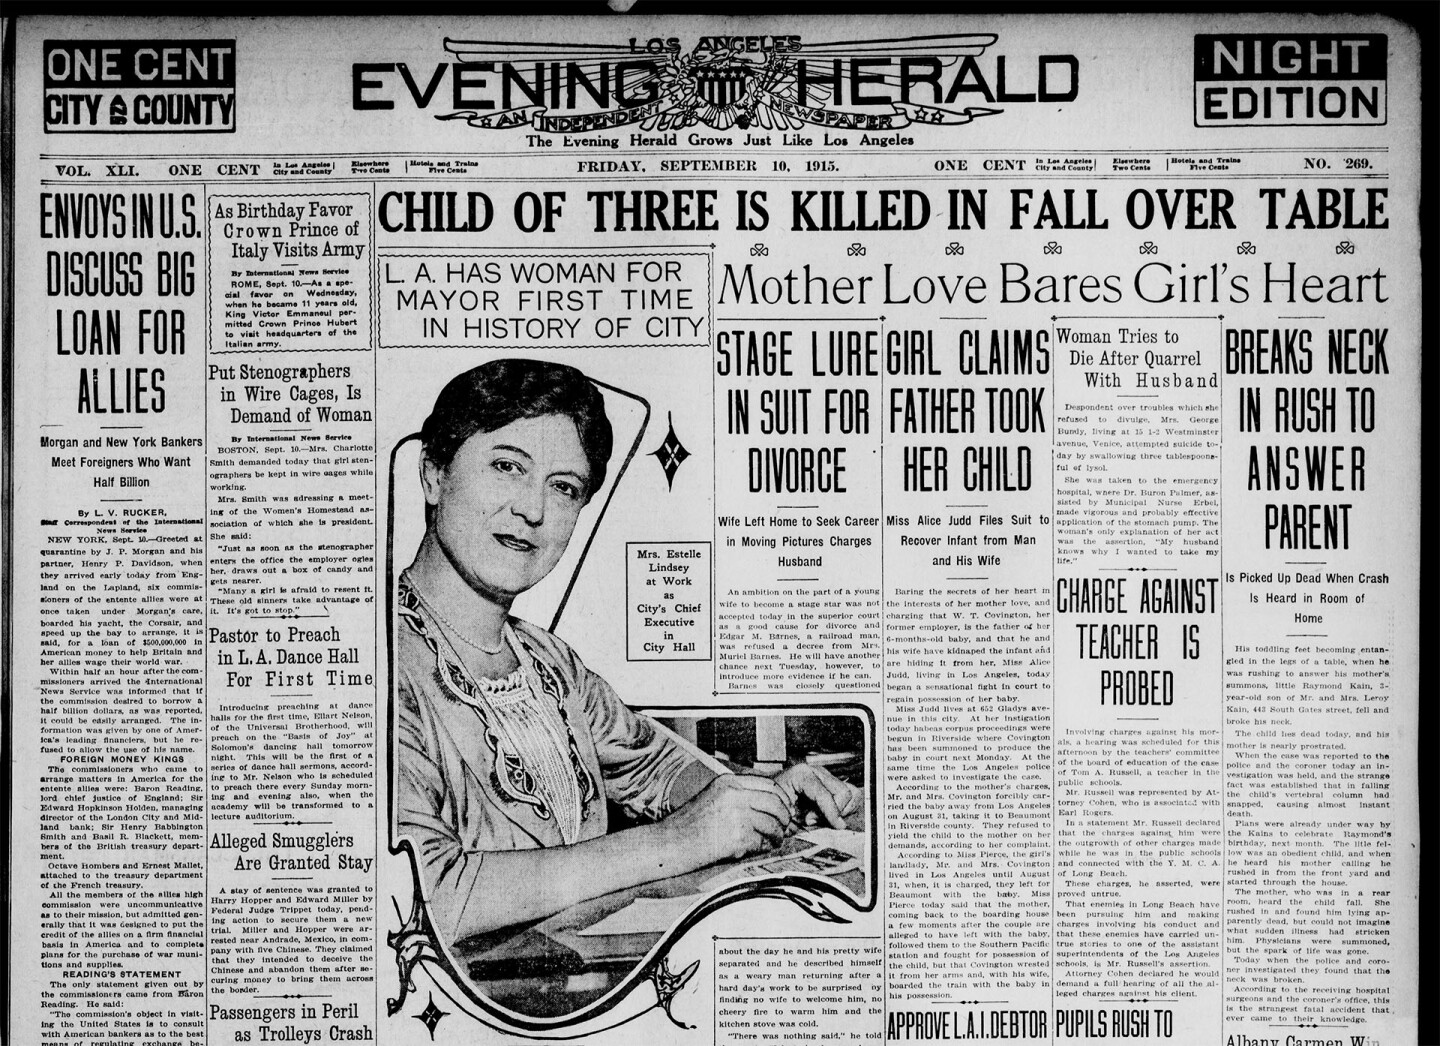 Acting Mayor Lindsey on the front page of the Los Angeles Herald